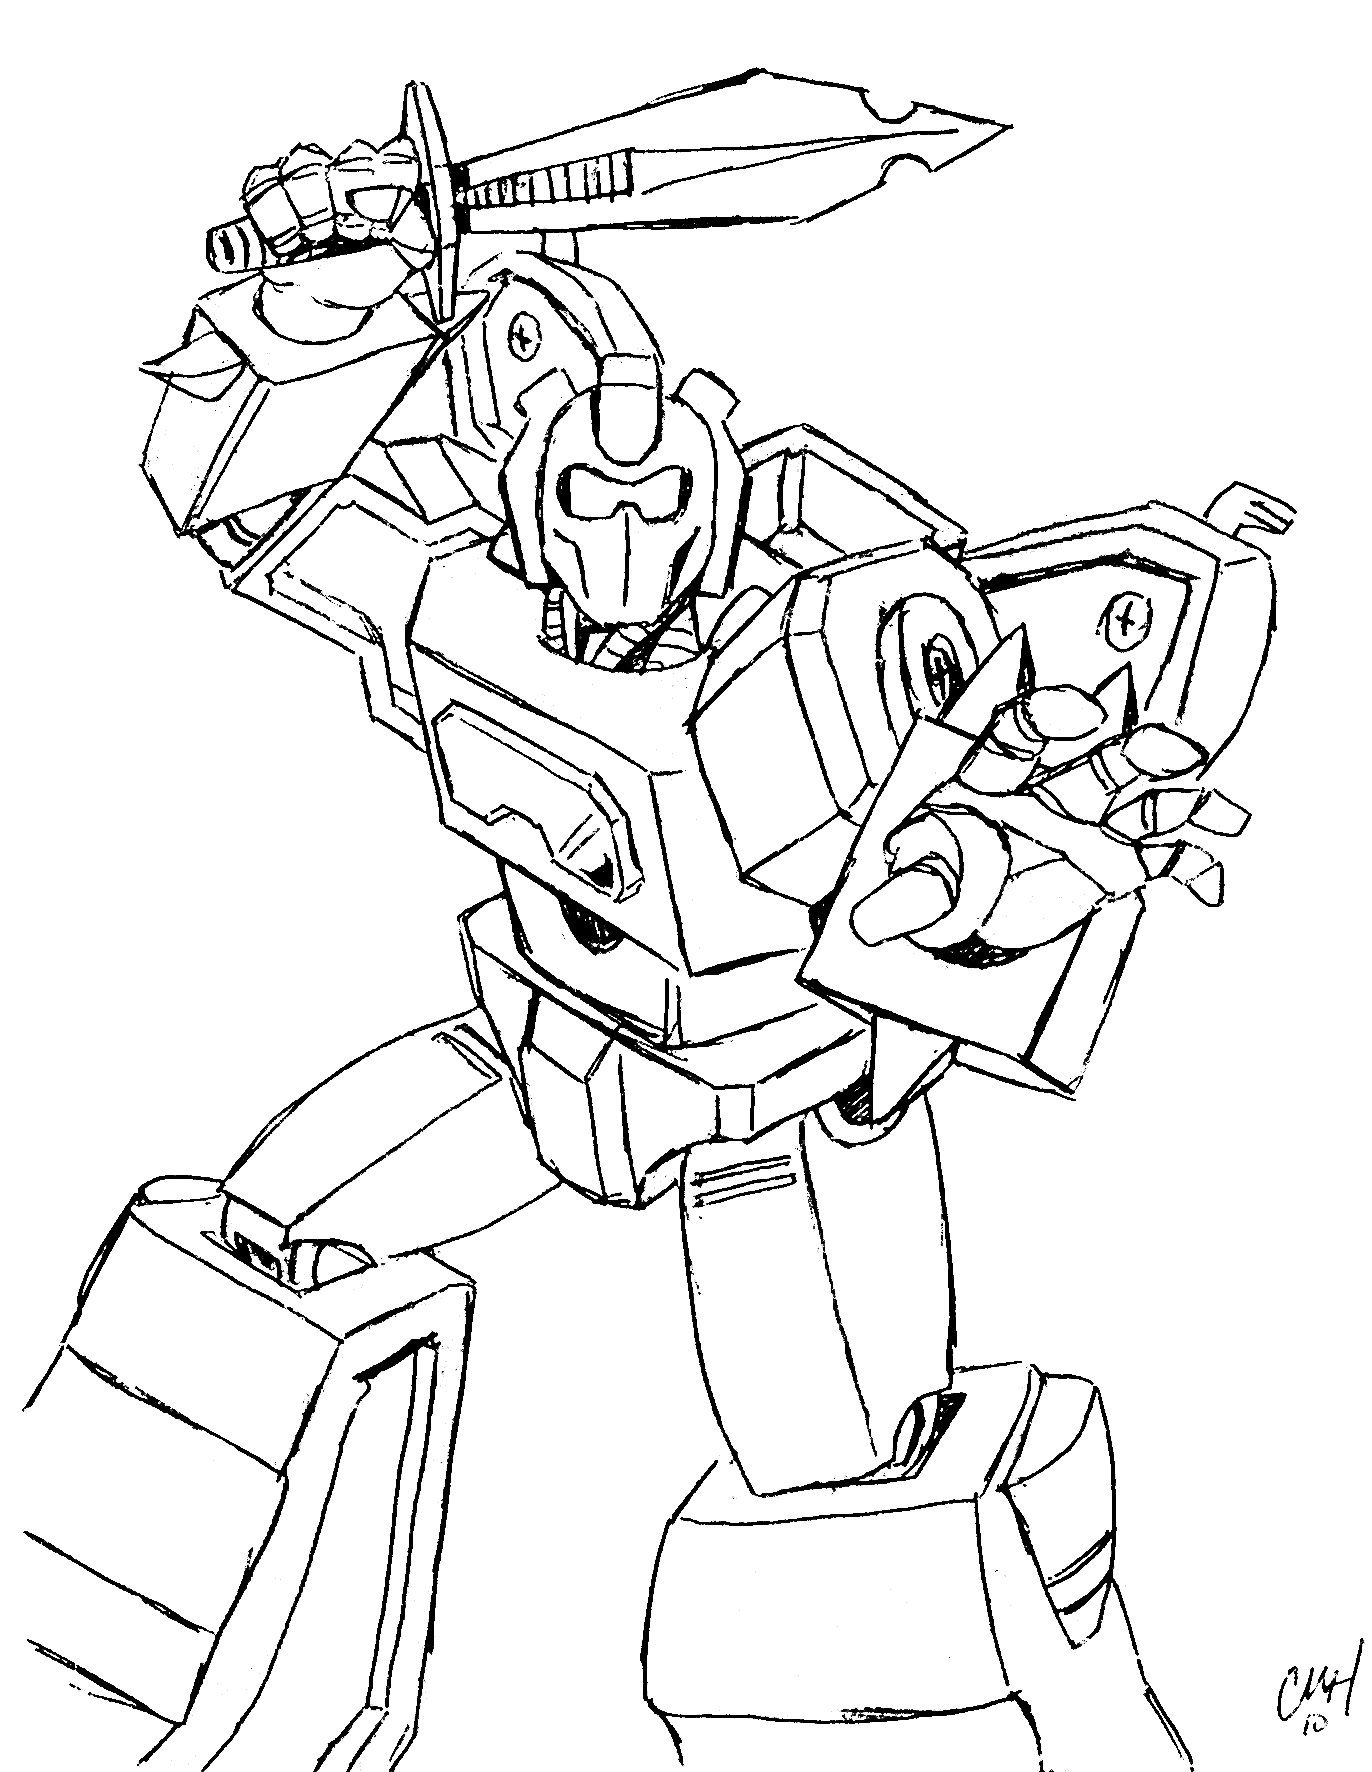 transformers age of extinction Coloring Pages Free